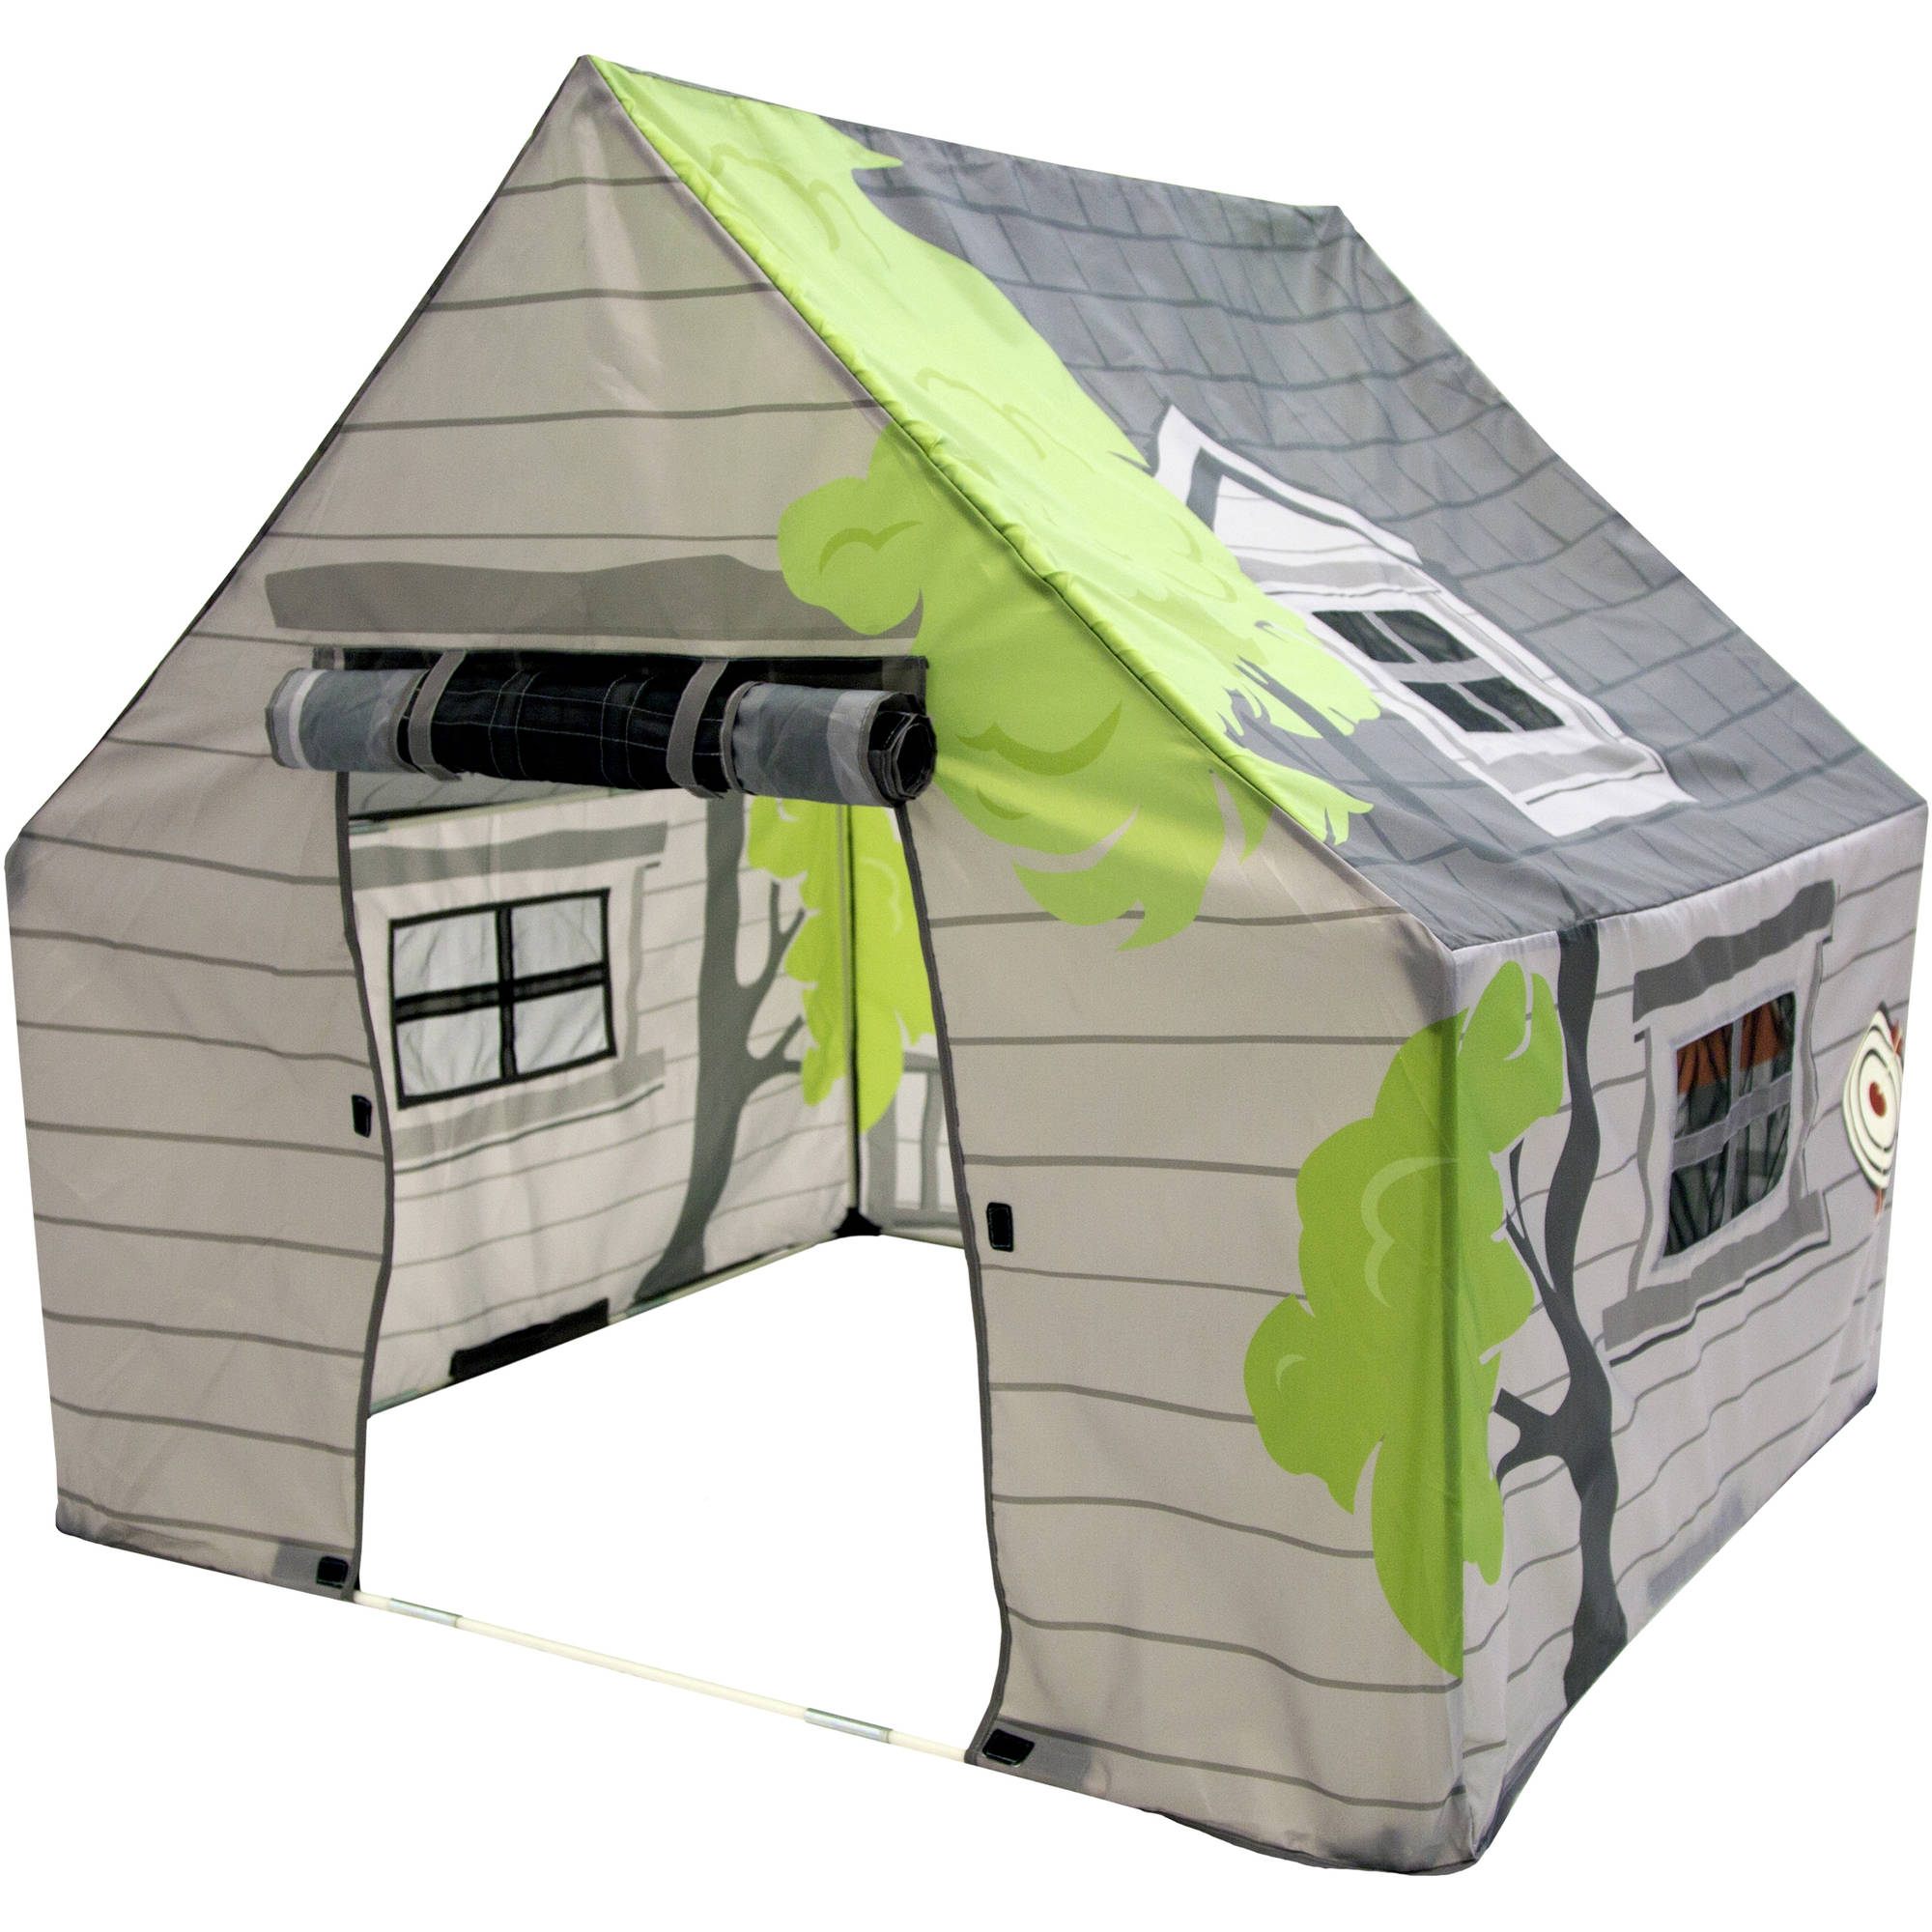 Pacific Play Tents Tree House Hide-Away Ponge Fabric  sc 1 st  Walmart & Pacific Play Tents Tree House Hide-Away Ponge Fabric - Walmart.com